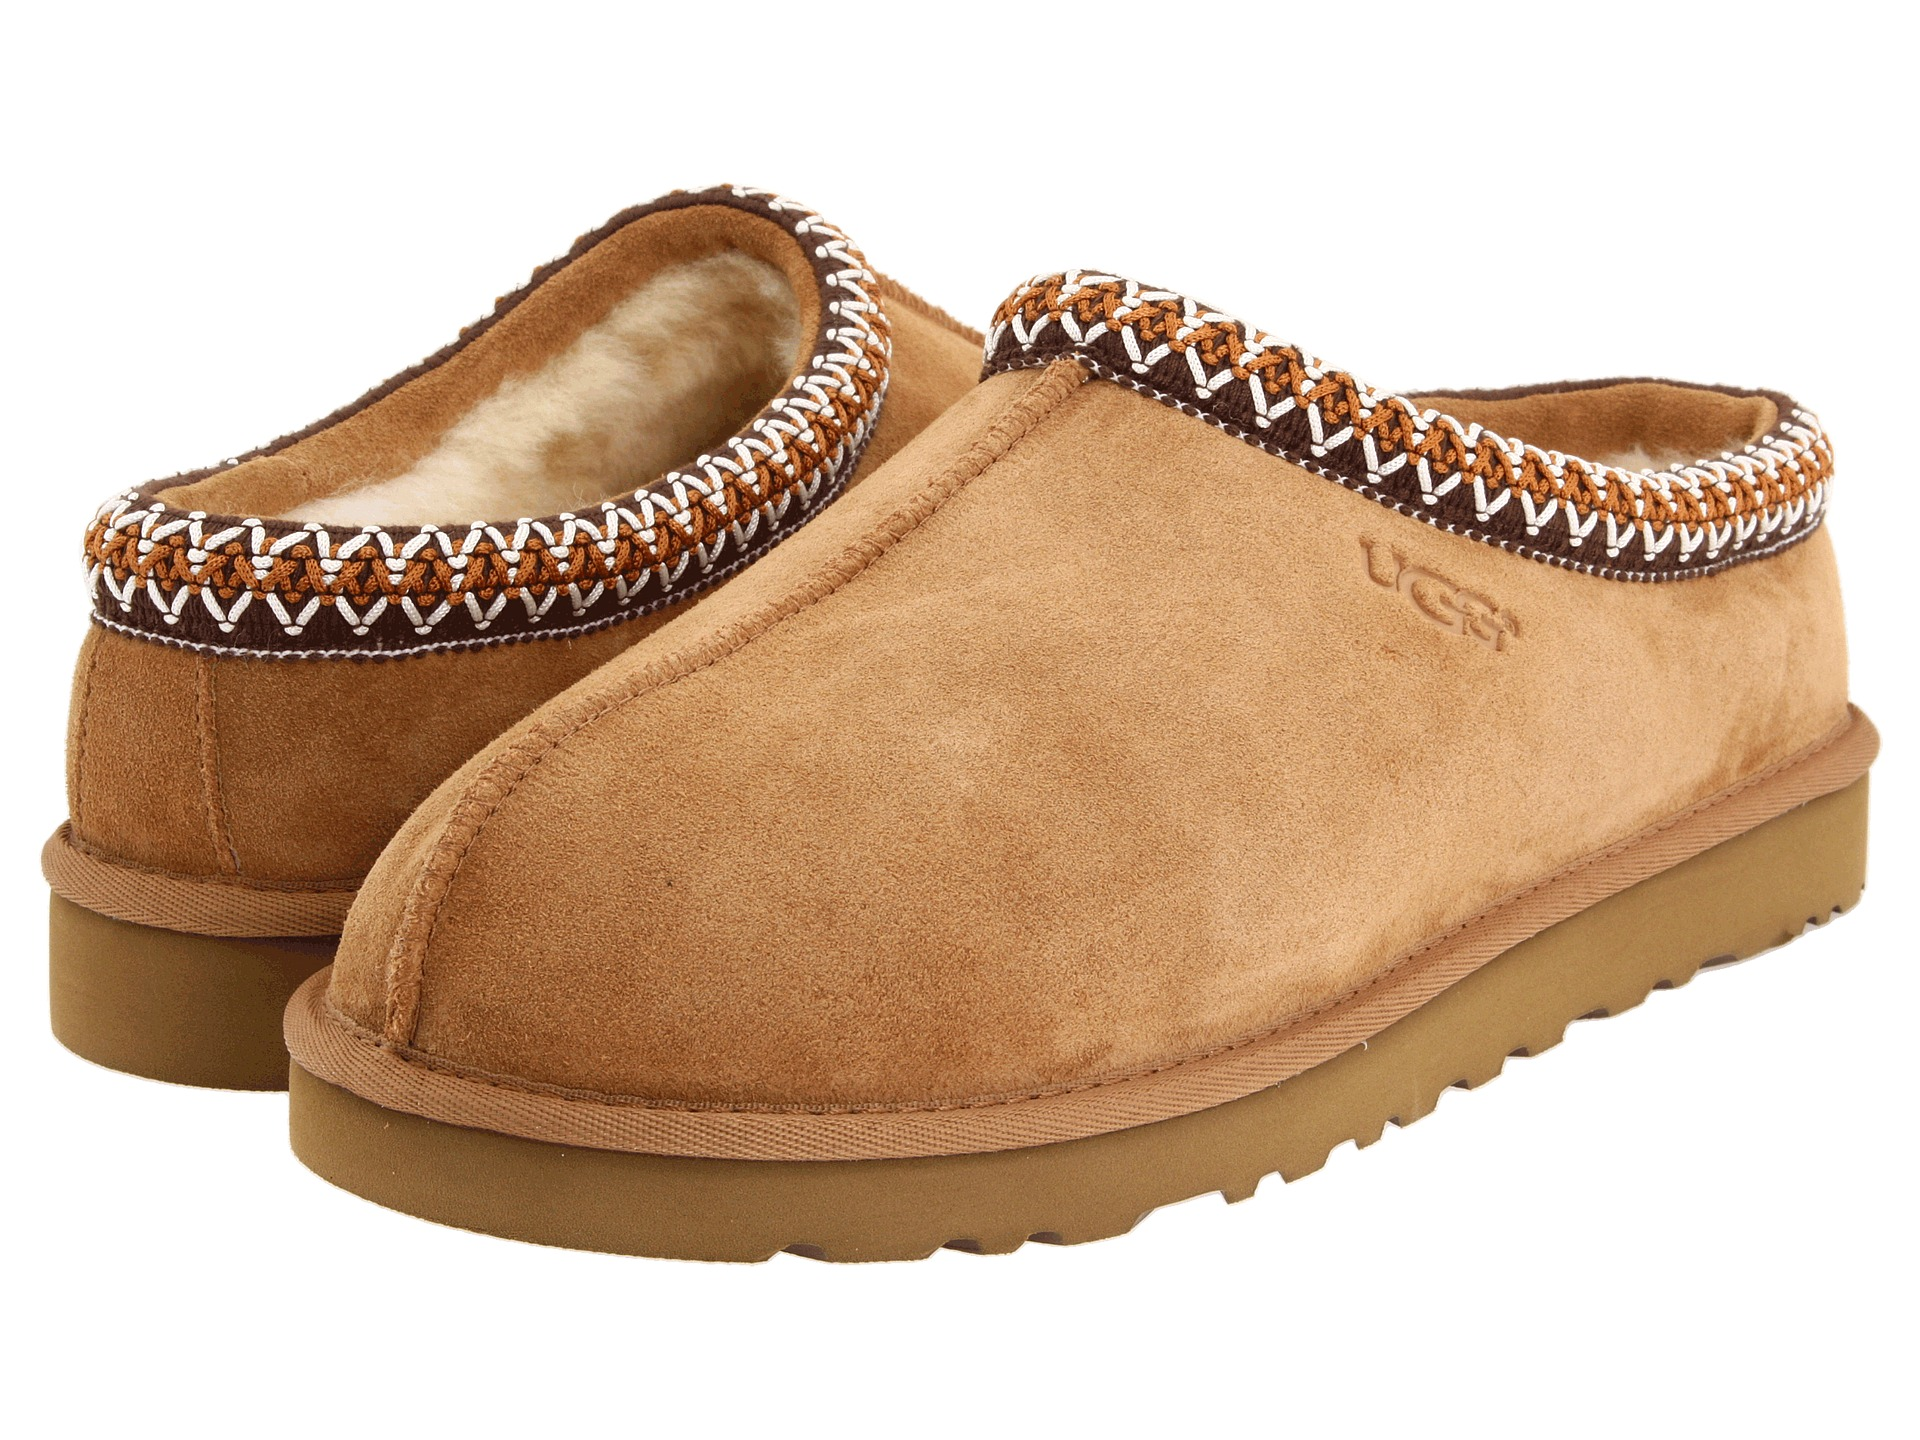 Loafers for Men. Tie your look together with Men's Loafers from Kohl's! Loafers for Men are versatile, and are perfect for any casual or dressy outfit! Kohl's features many of the most popular brands in men's shoes, including mens Nunn Bush loafers.